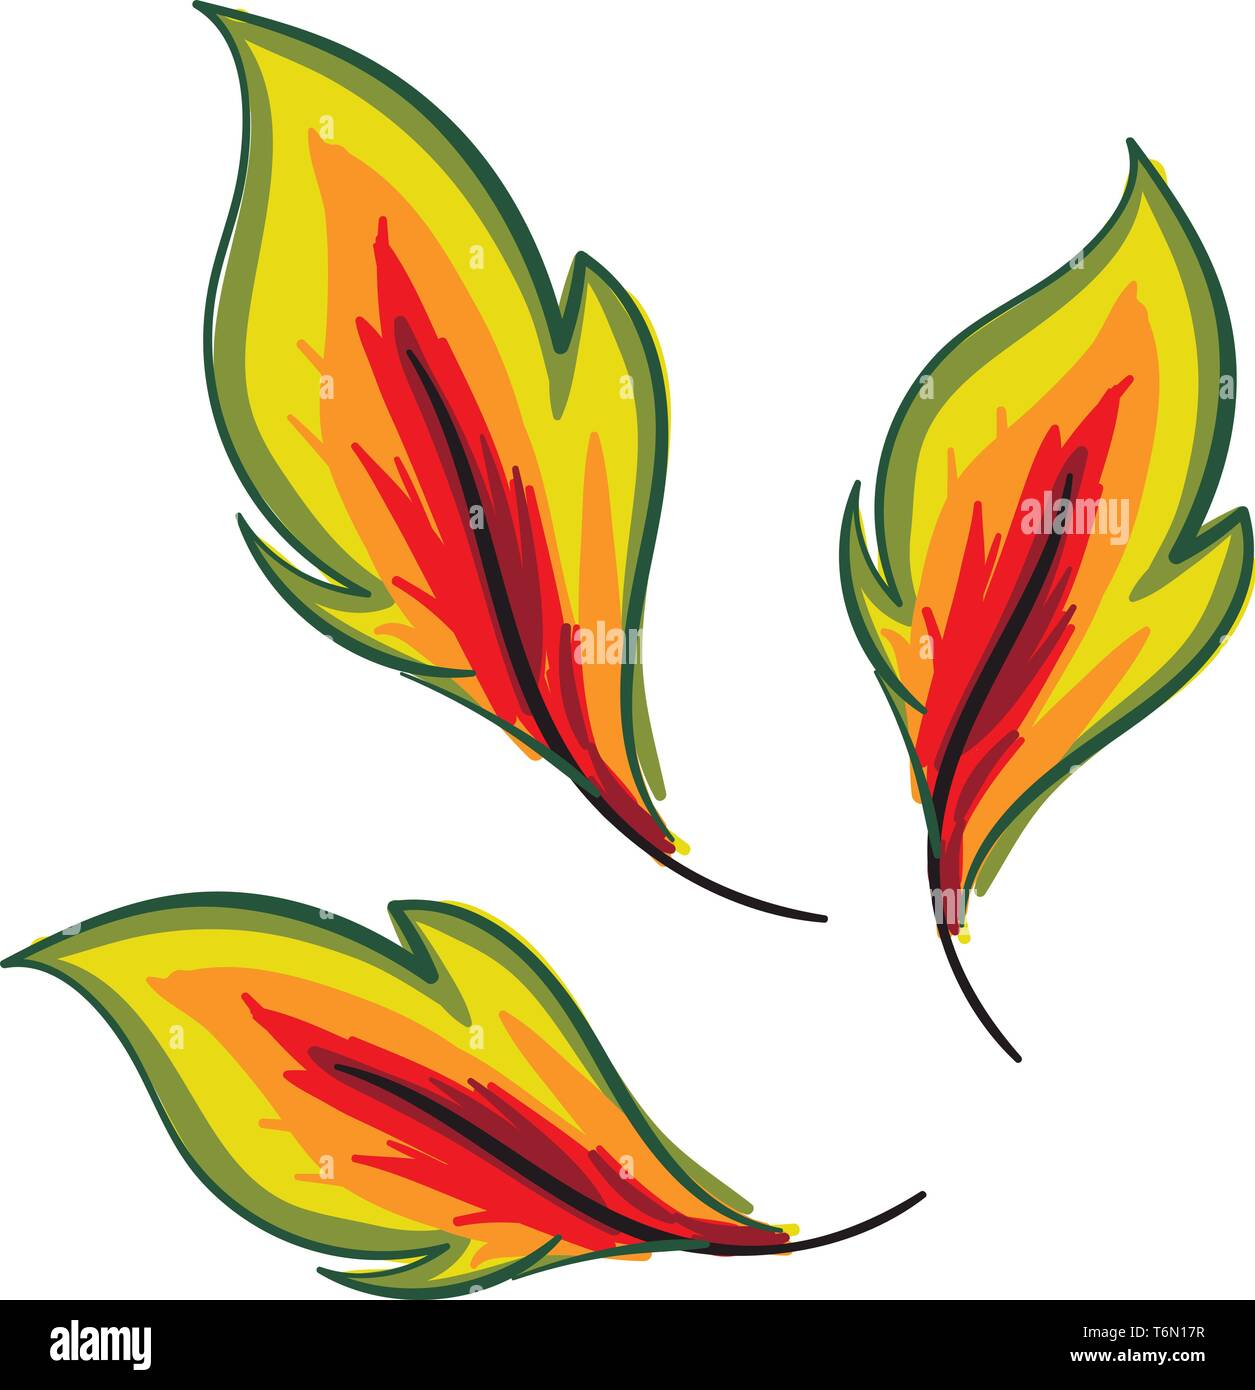 hight resolution of clipart of three autumn leaves turning yellow have a round toothed and scalloped edge vector color drawing or illustration